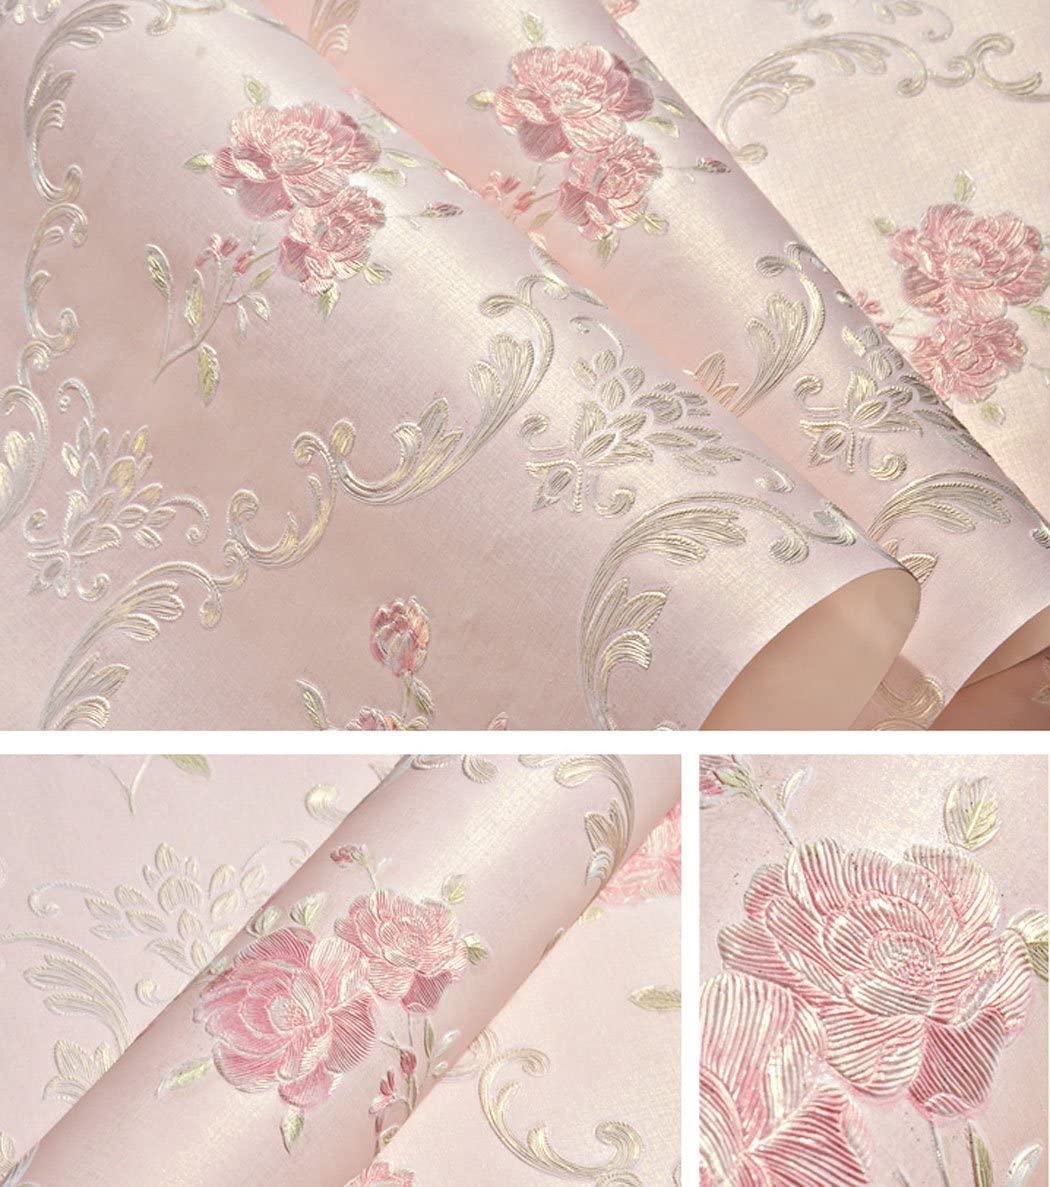 Embossed Rose Floral Contact Paper Self Adhesive Non-Woven Wallpaper Peel and Stick Wall Decor for Girls Living Room Bedroom Kitchen Bathroom Wall (Pink, 20.83